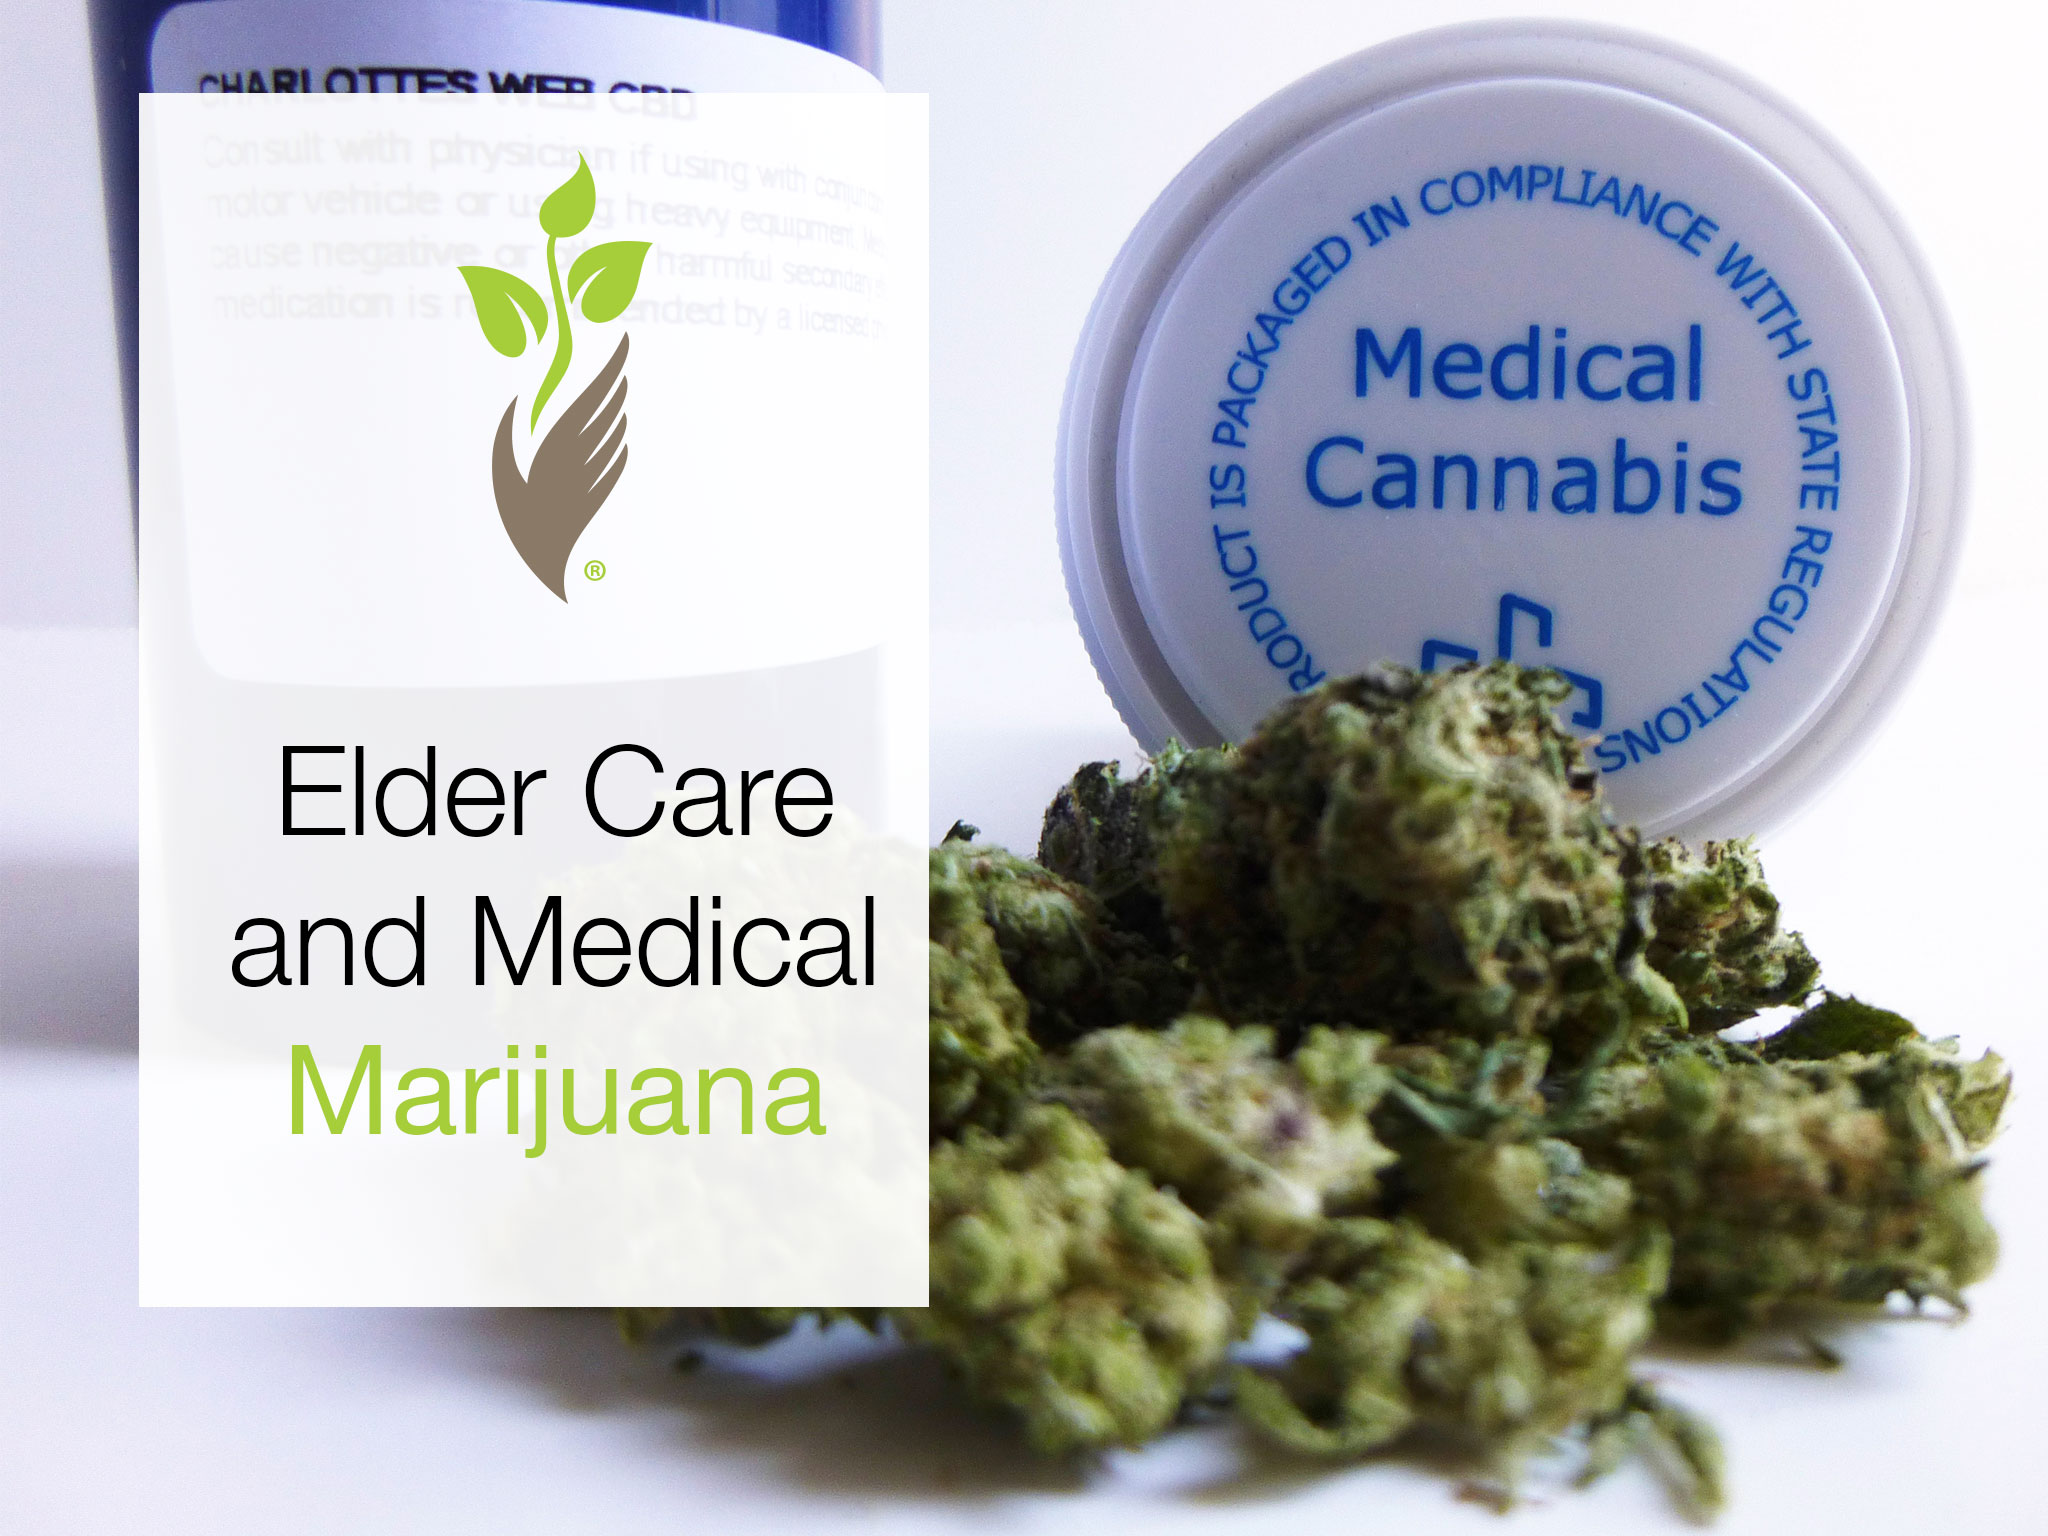 Elder Care and Medical Marijuana